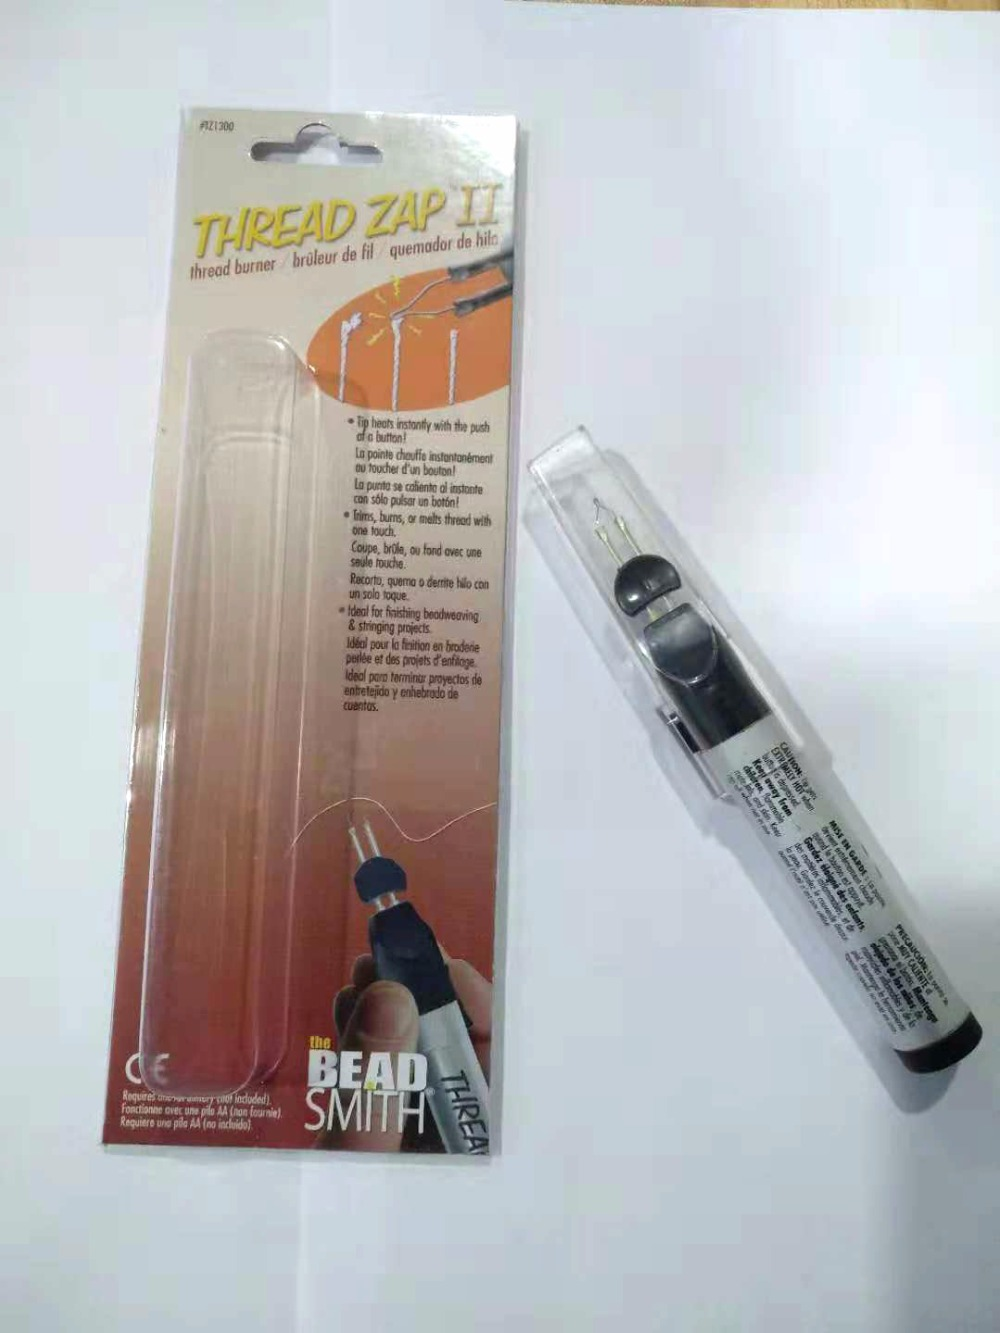 Free Shipping Welding Crayons <font><b>Wax</b></font> Pen Thread Zap II Thread Burner for <font><b>Jewelry</b></font> <font><b>Tools</b></font> Melting Welding <font><b>Wax</b></font> Pen image